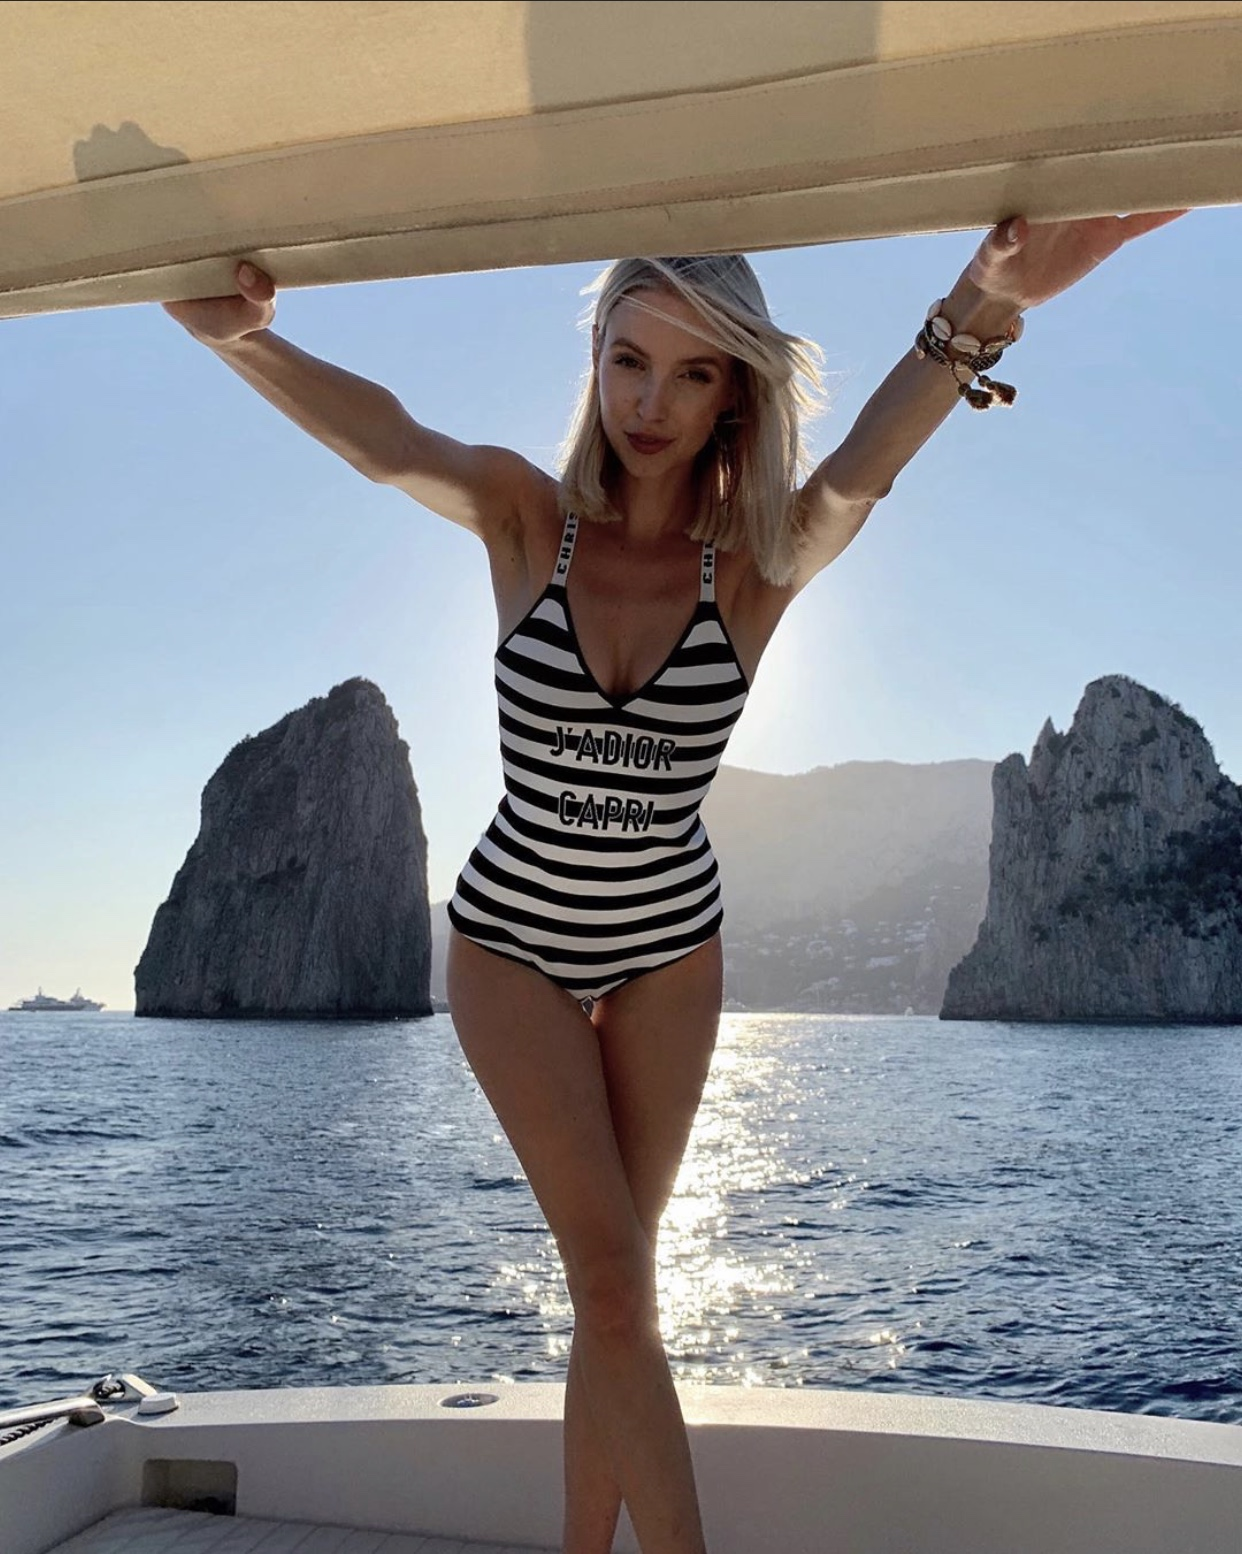 Day Trip to Capri by Boat